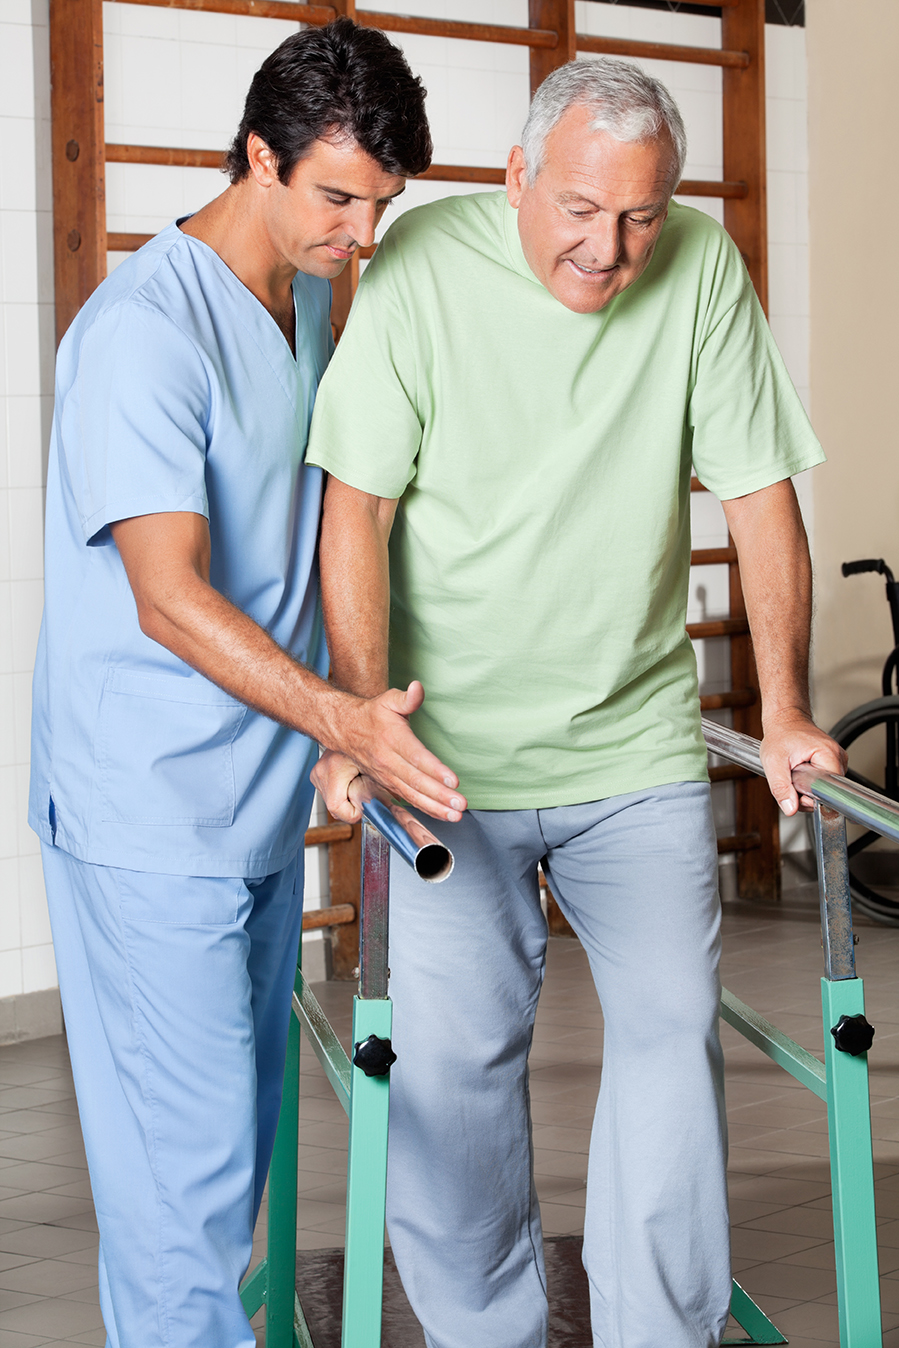 Physical therapist assisting senior man to walk with the support